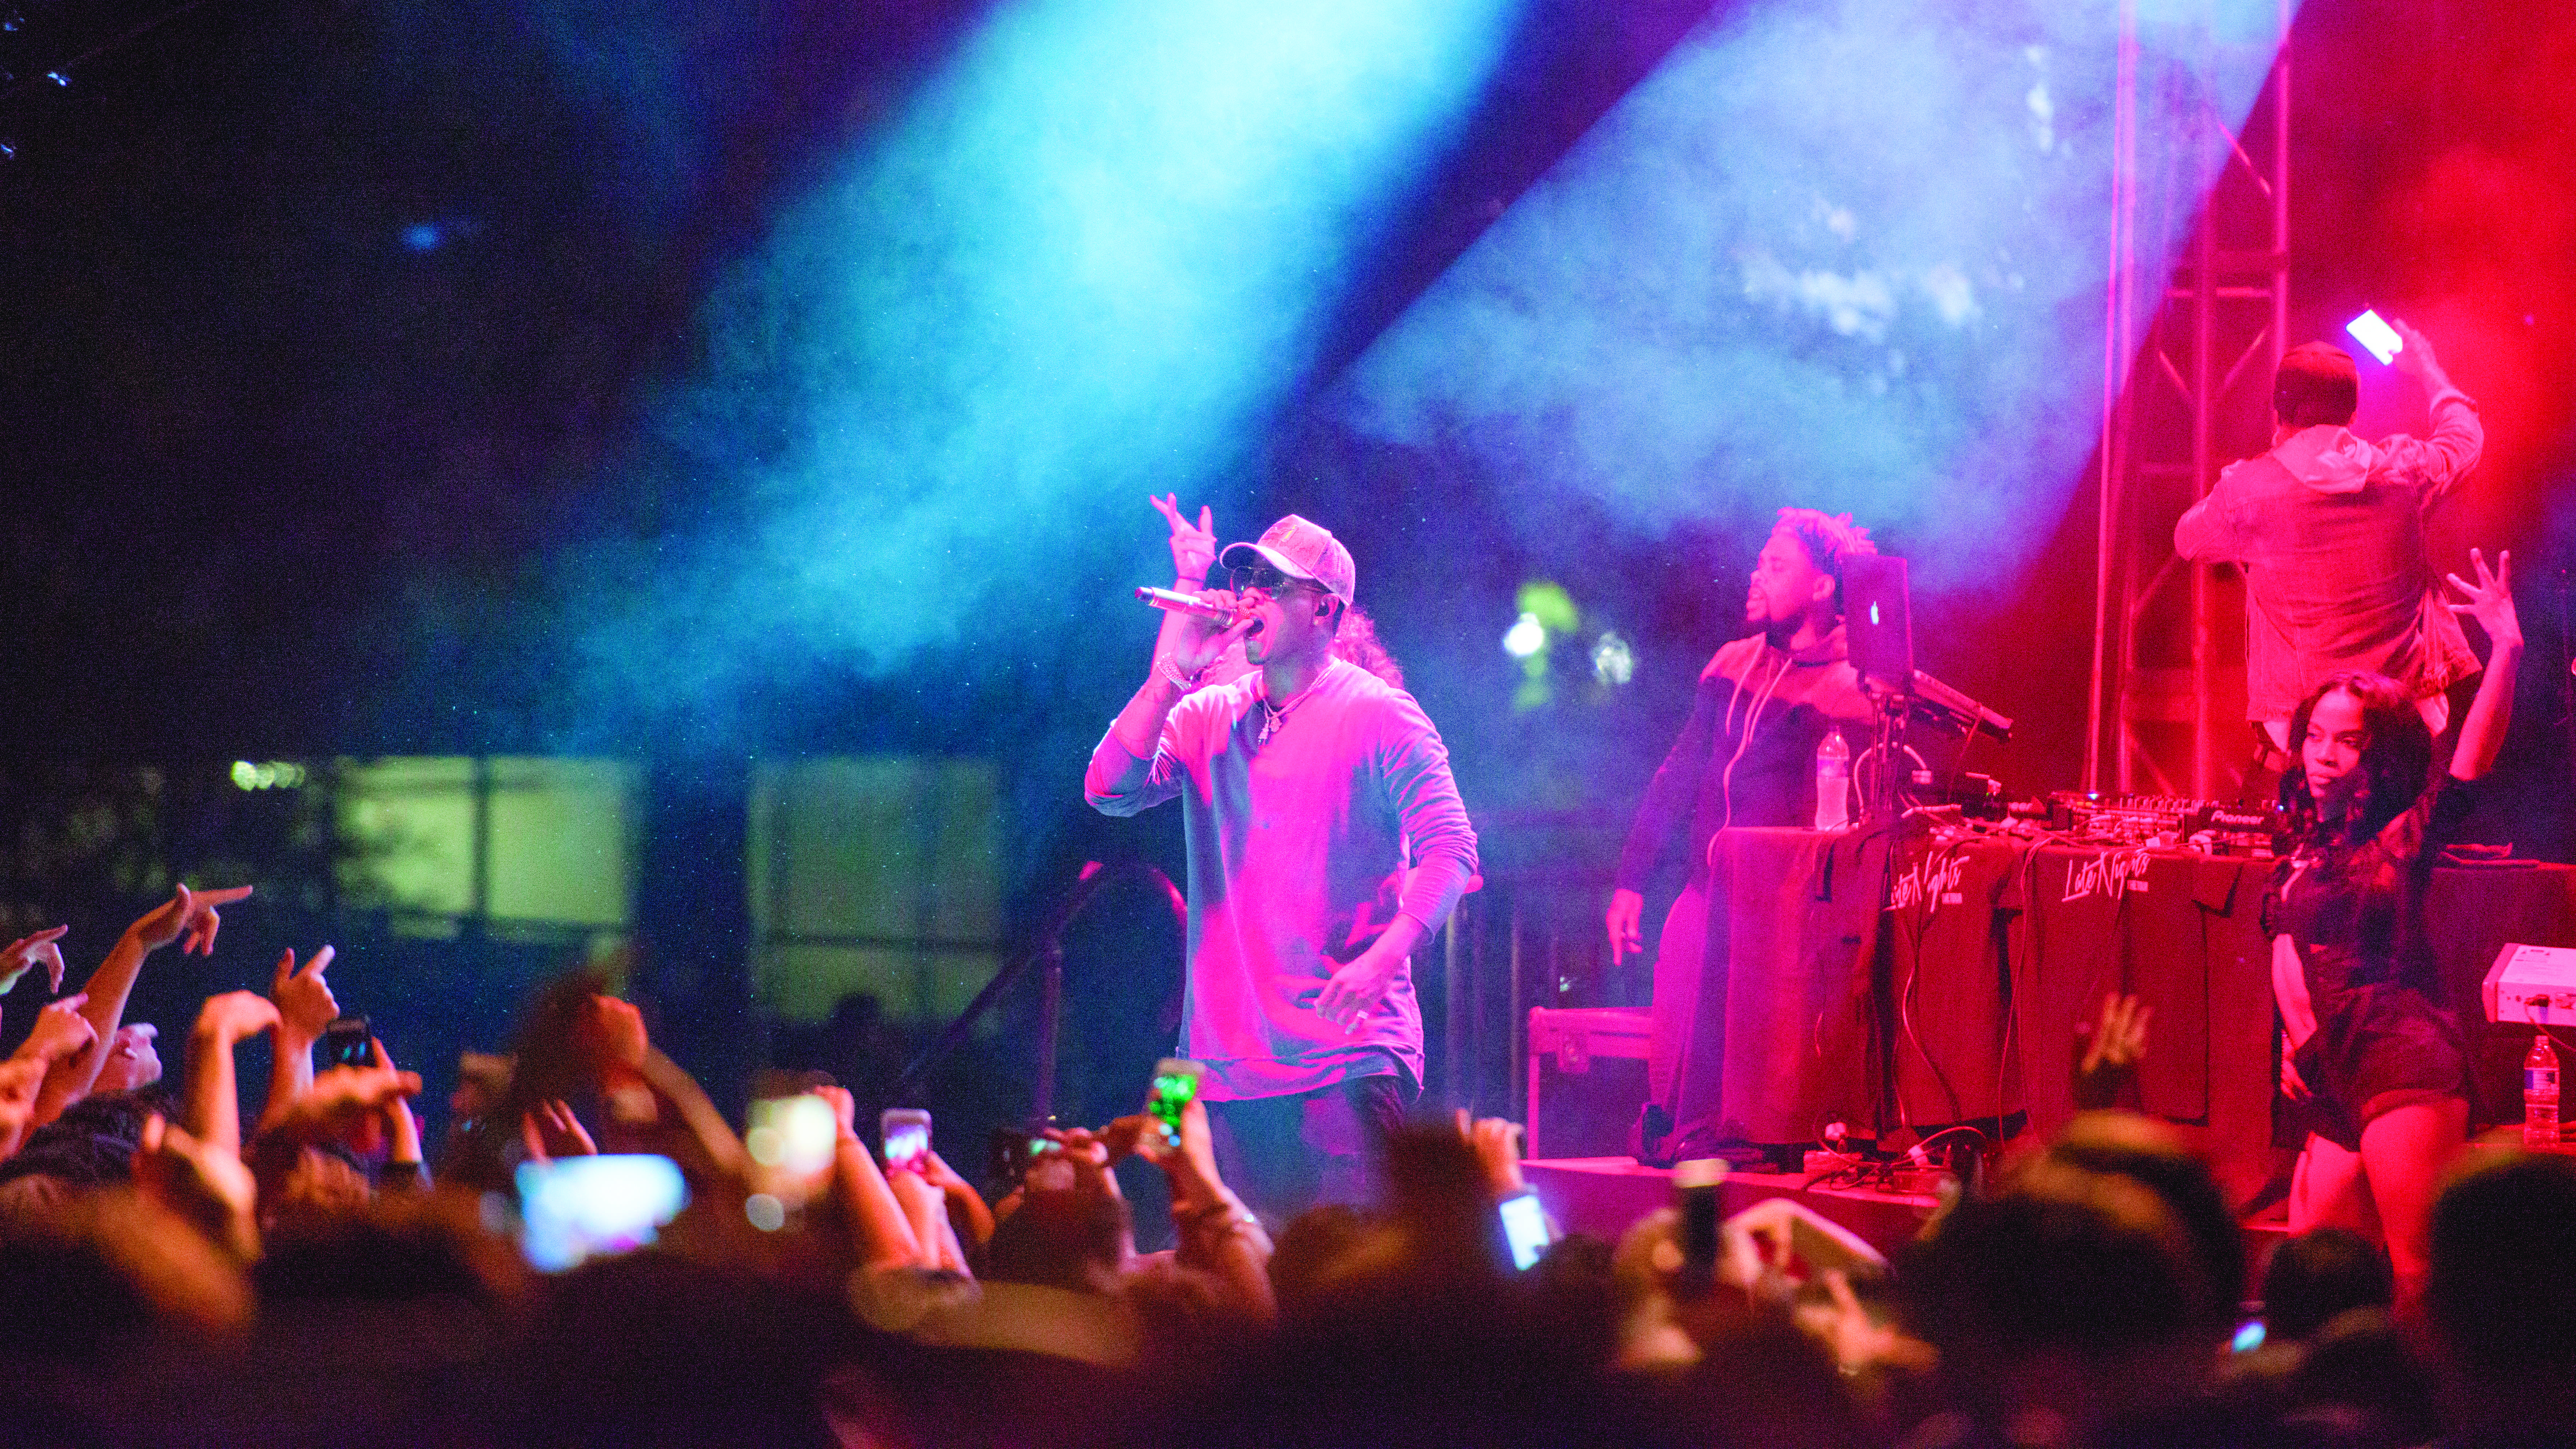 Jeremih performing at the University of Utah 2016 Redfest at the Student Union building plaza on Friday, September 16, 2016 (Photo by Kiffer Creveling | The Daily Utah Chronicle)